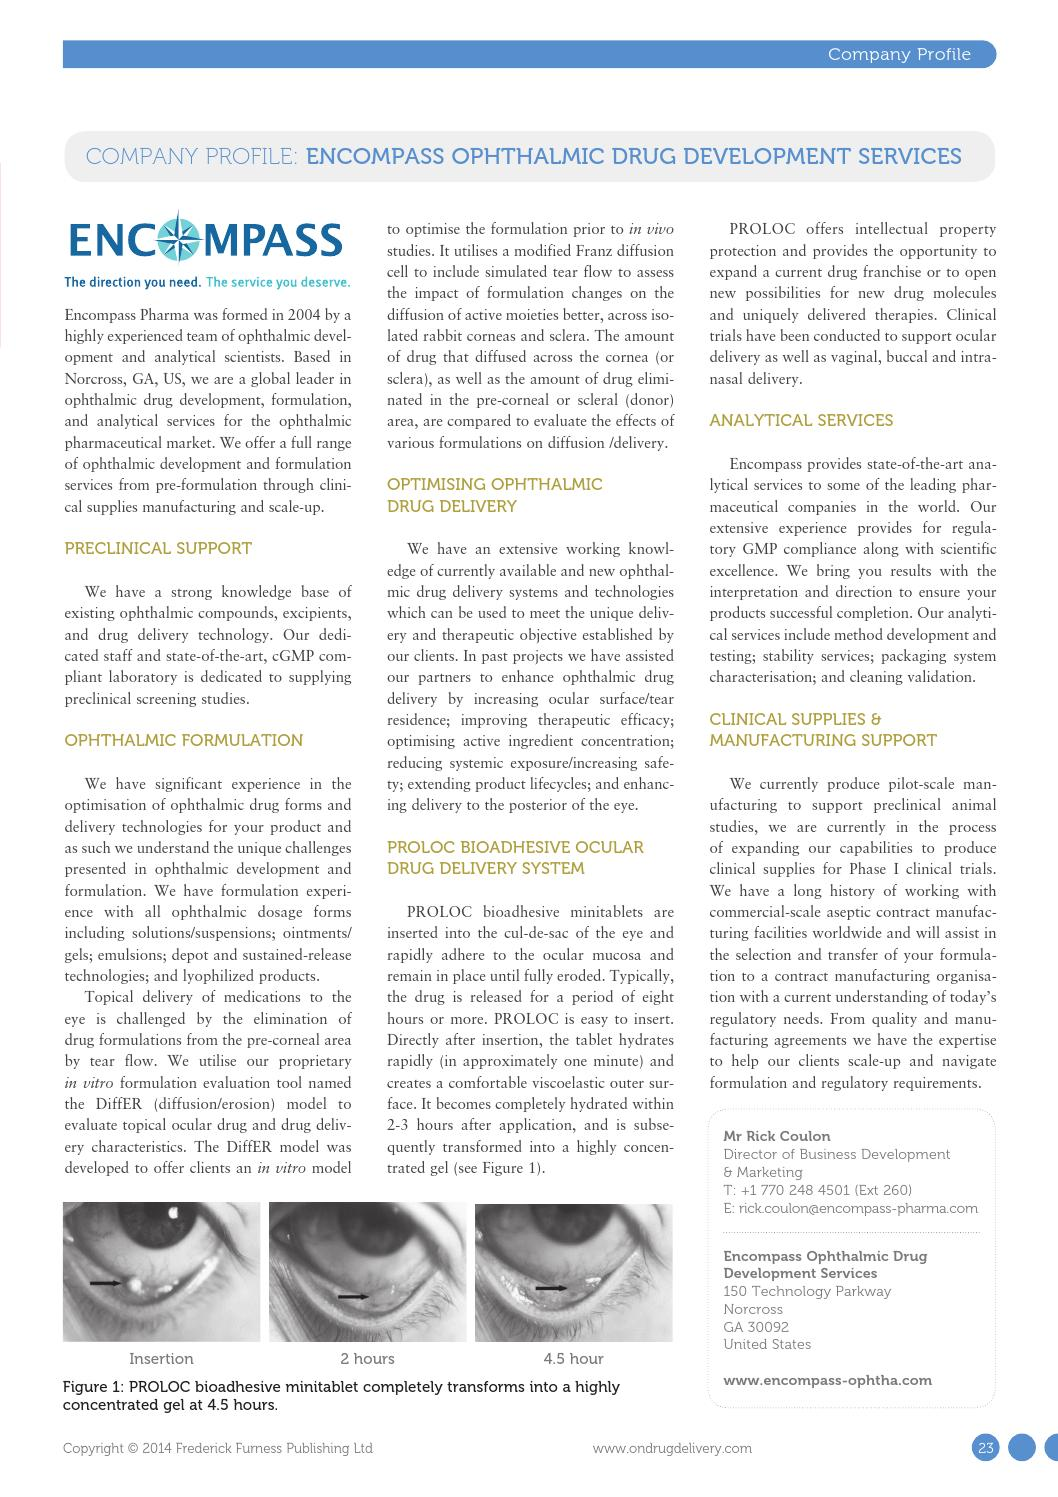 Ophthalmic Drug Delivery: ONdrugDelivery, Issue 48 by